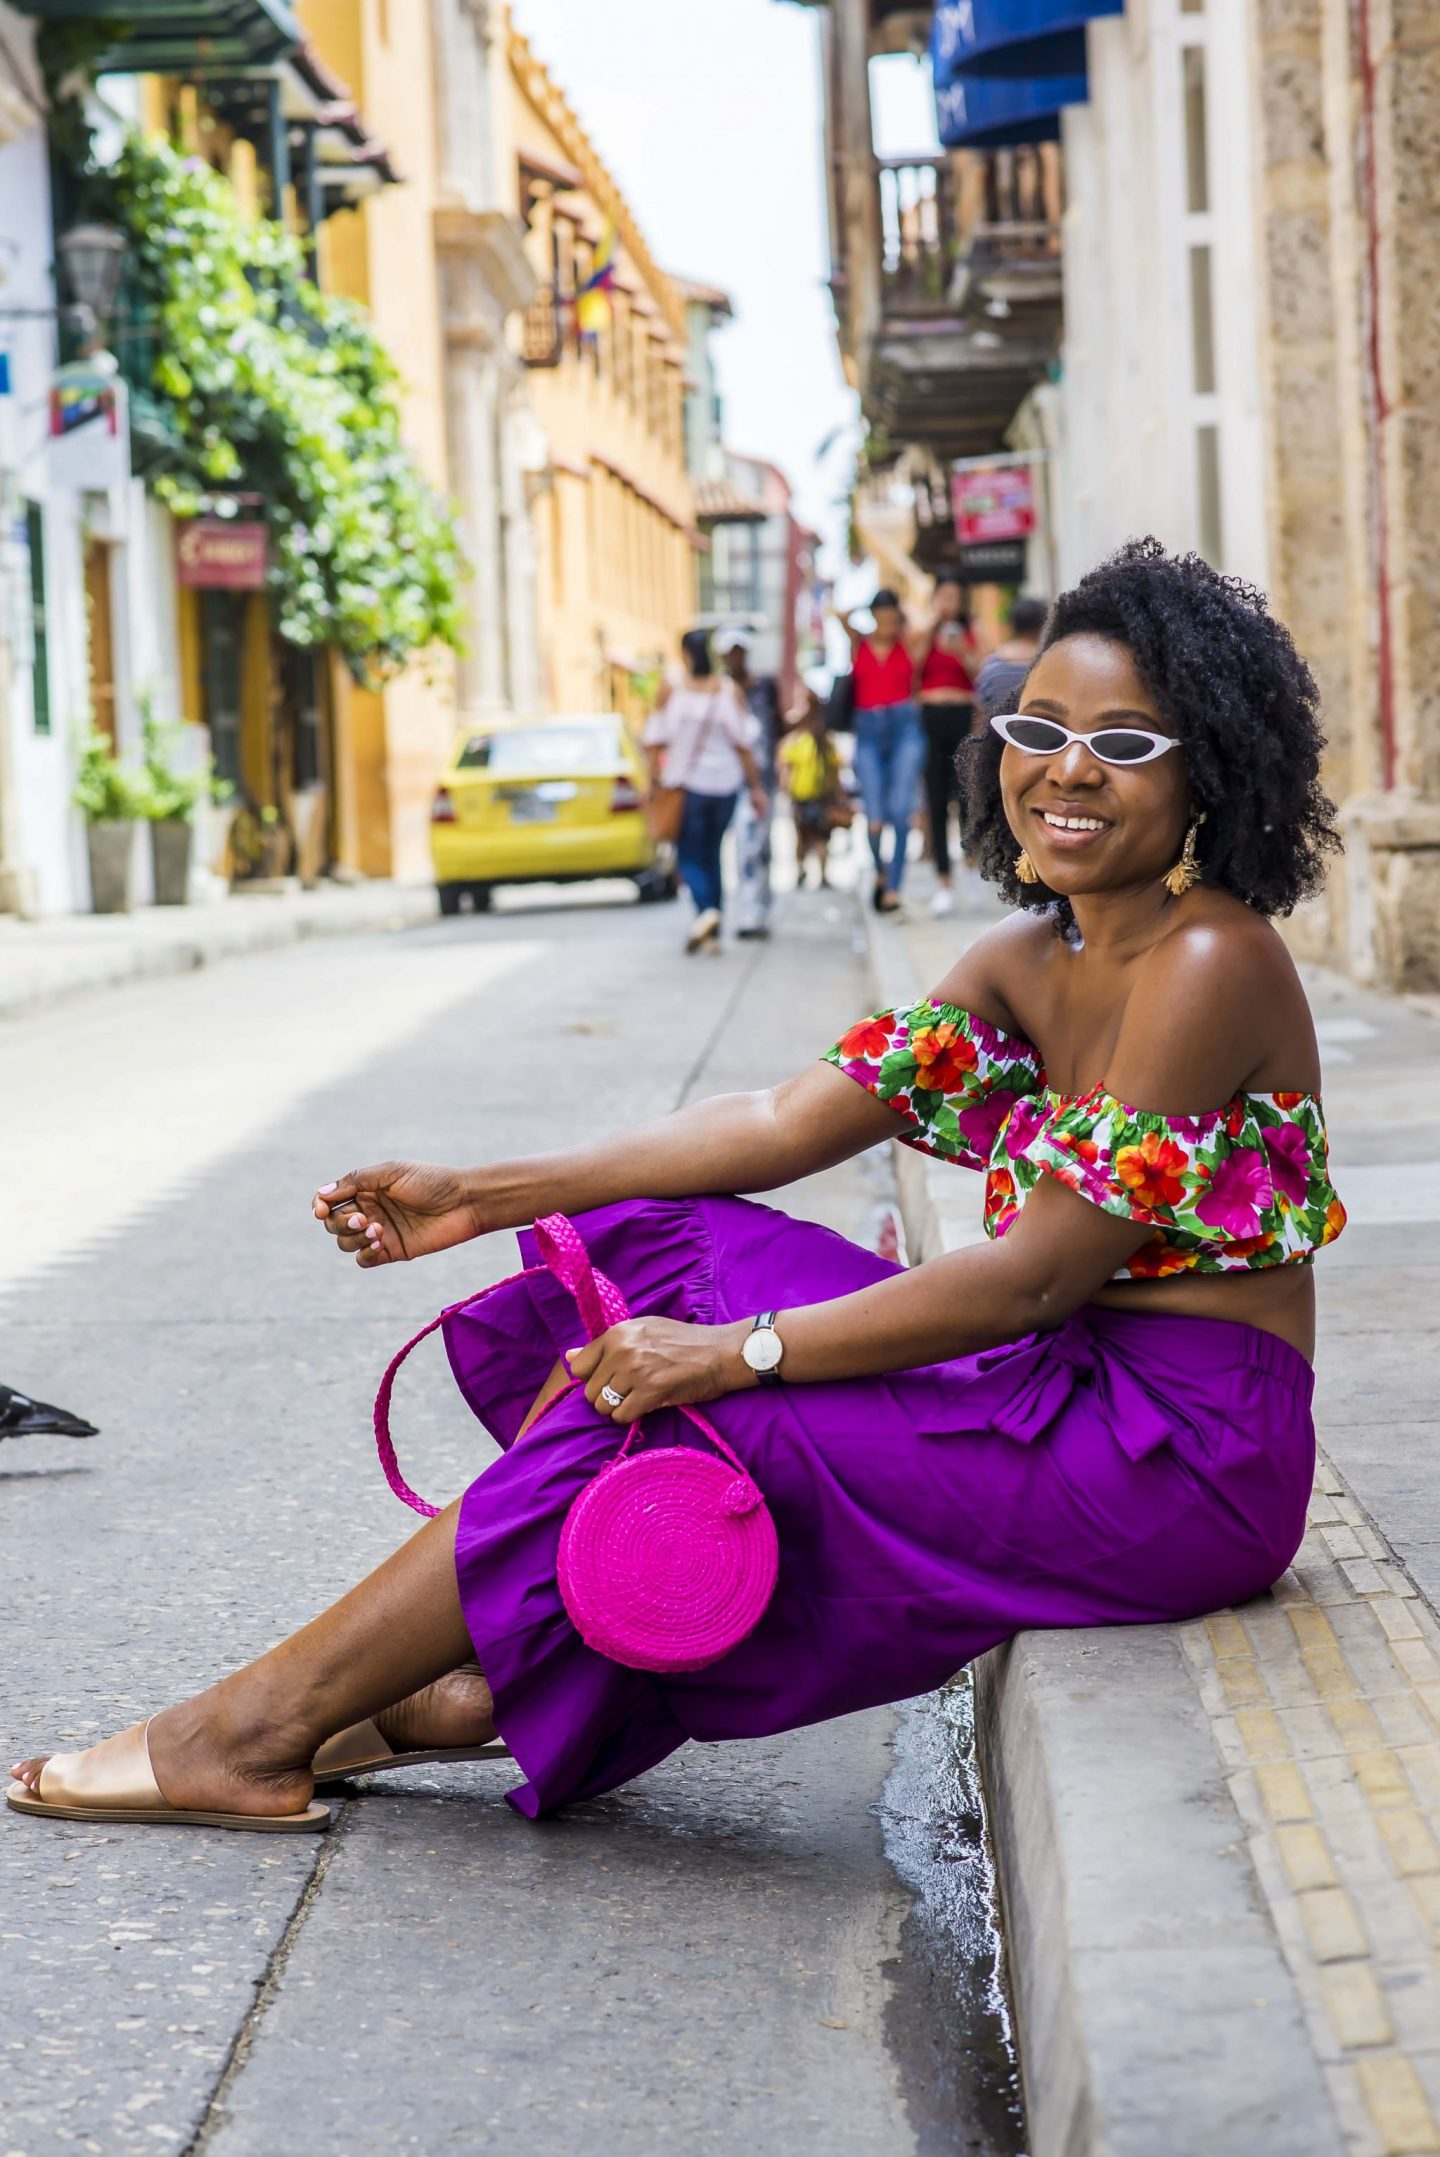 Vacation fashion: Cartagena, Colombia